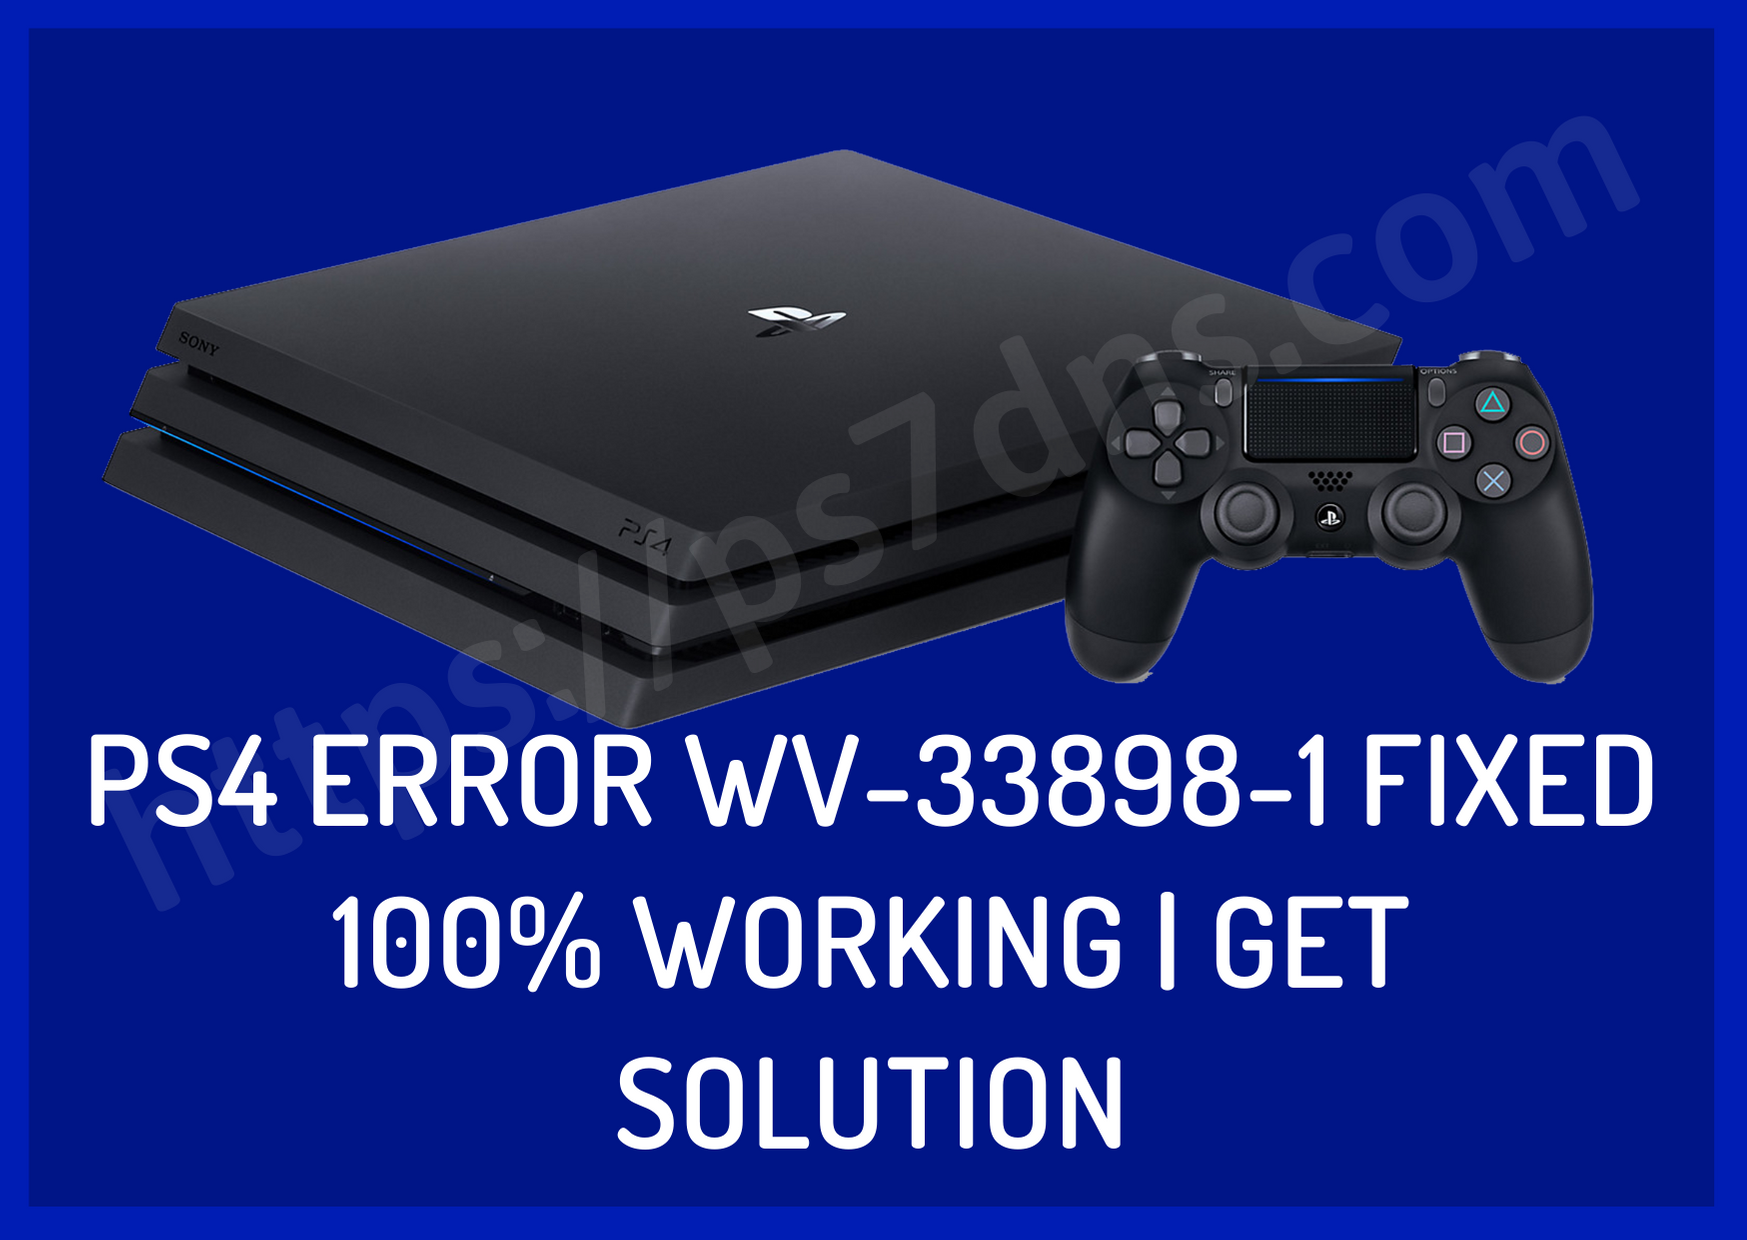 PS4 Error WV-33898-1 Fixed 100% Working Get Solution